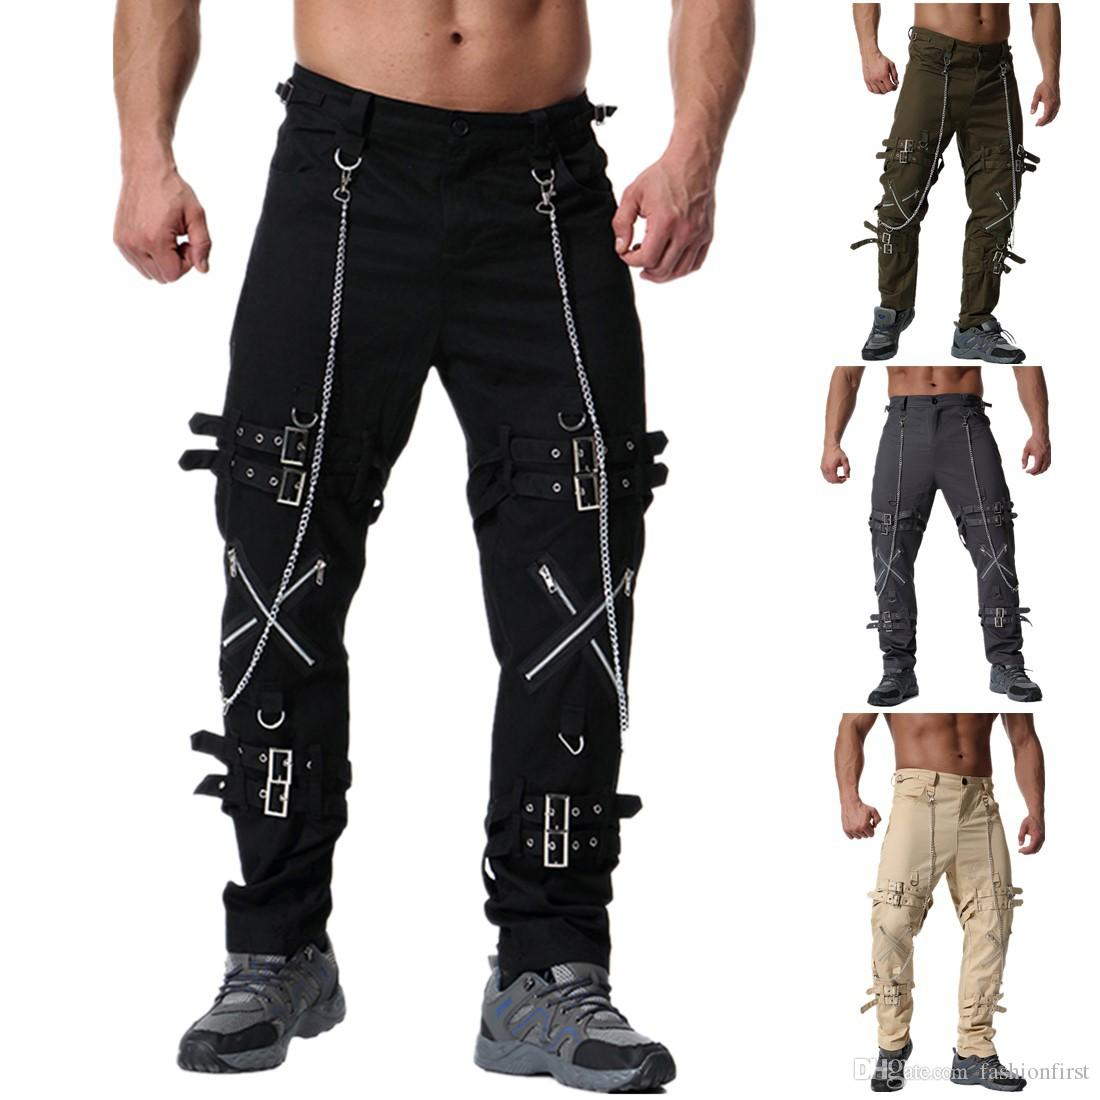 Fashion Vintage Mens Pants Loose Fit Chain Hip Hop COOL Male Novelty Streetwear Trousers Hot Sale Casual Cargo Pants